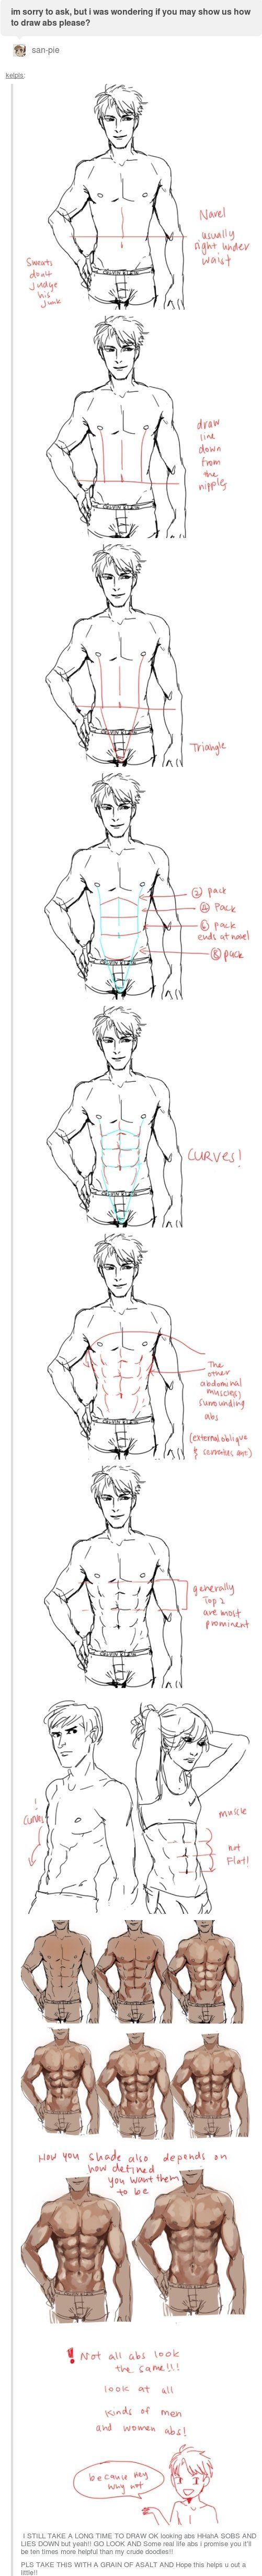 how to draw abs. http://kelpls.tumblr.com/post/72186004376/im-sorry ...